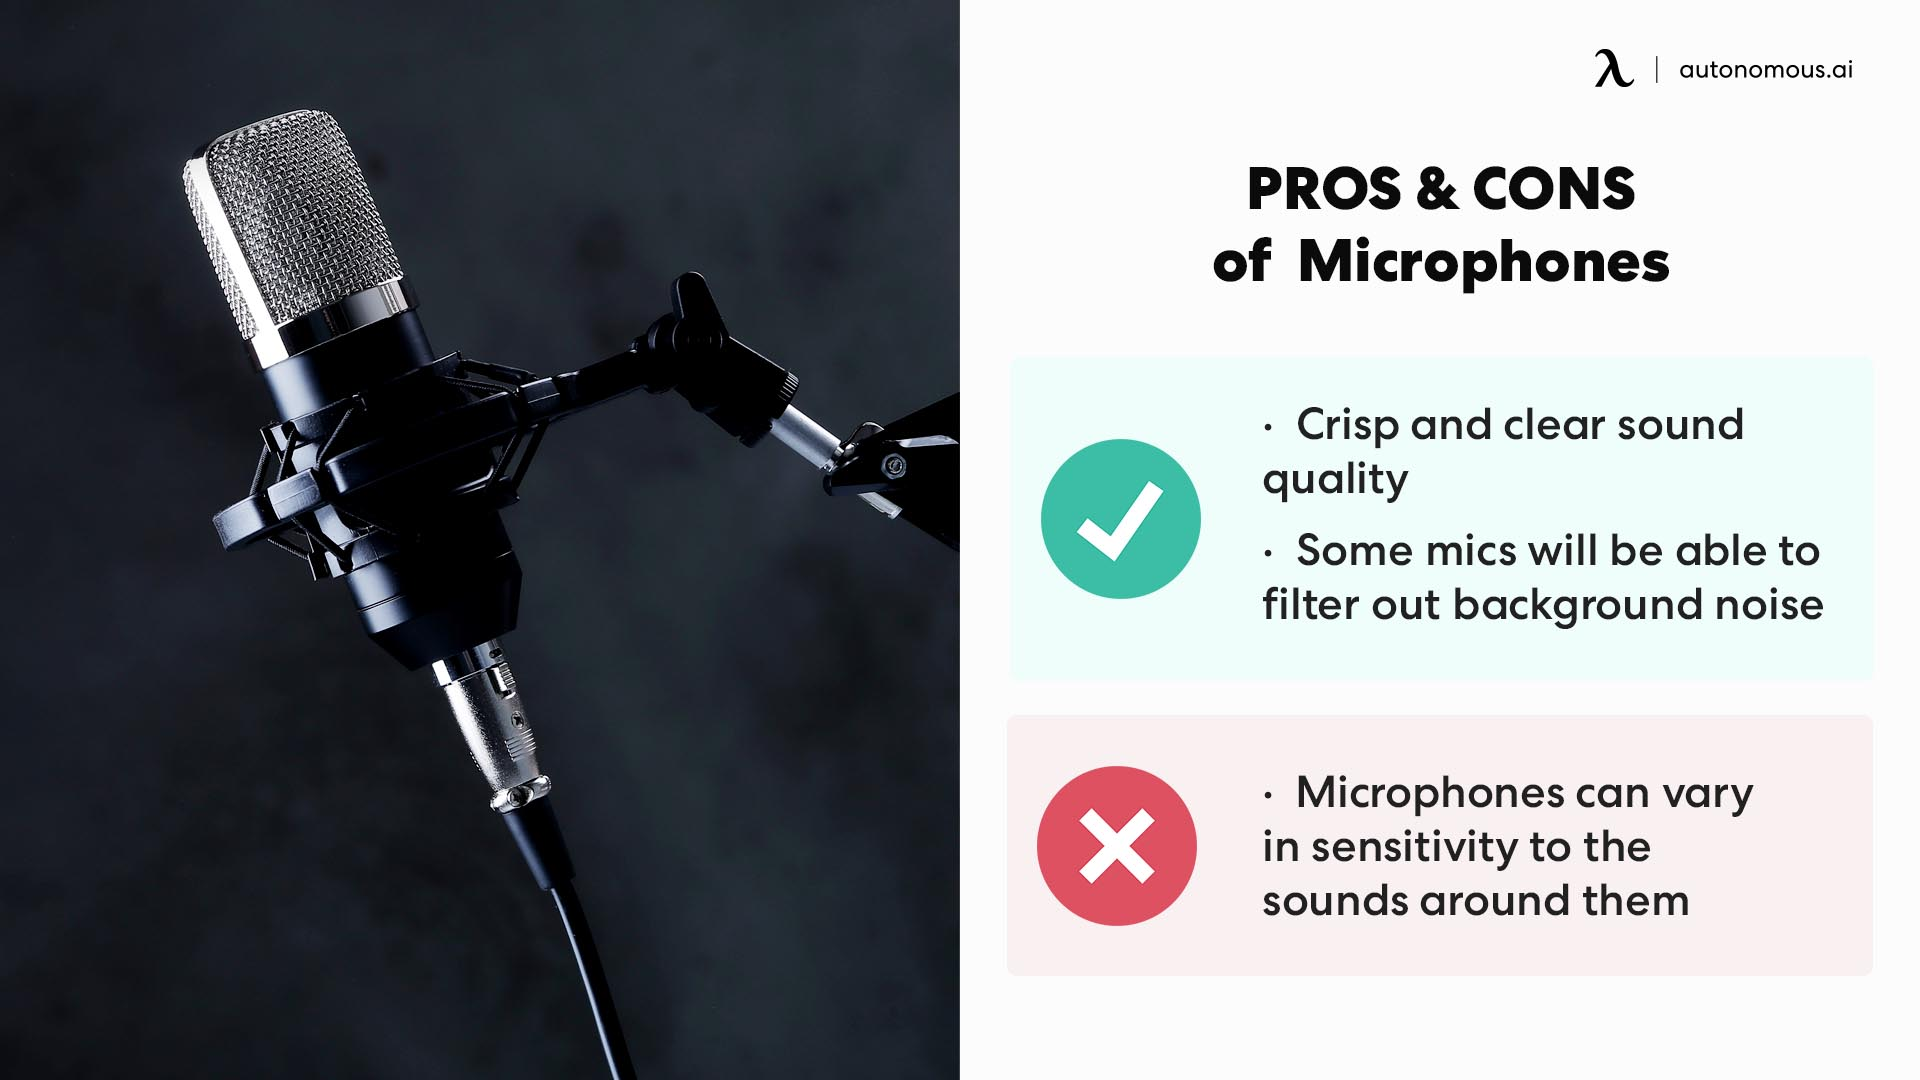 pros and cons of microphone